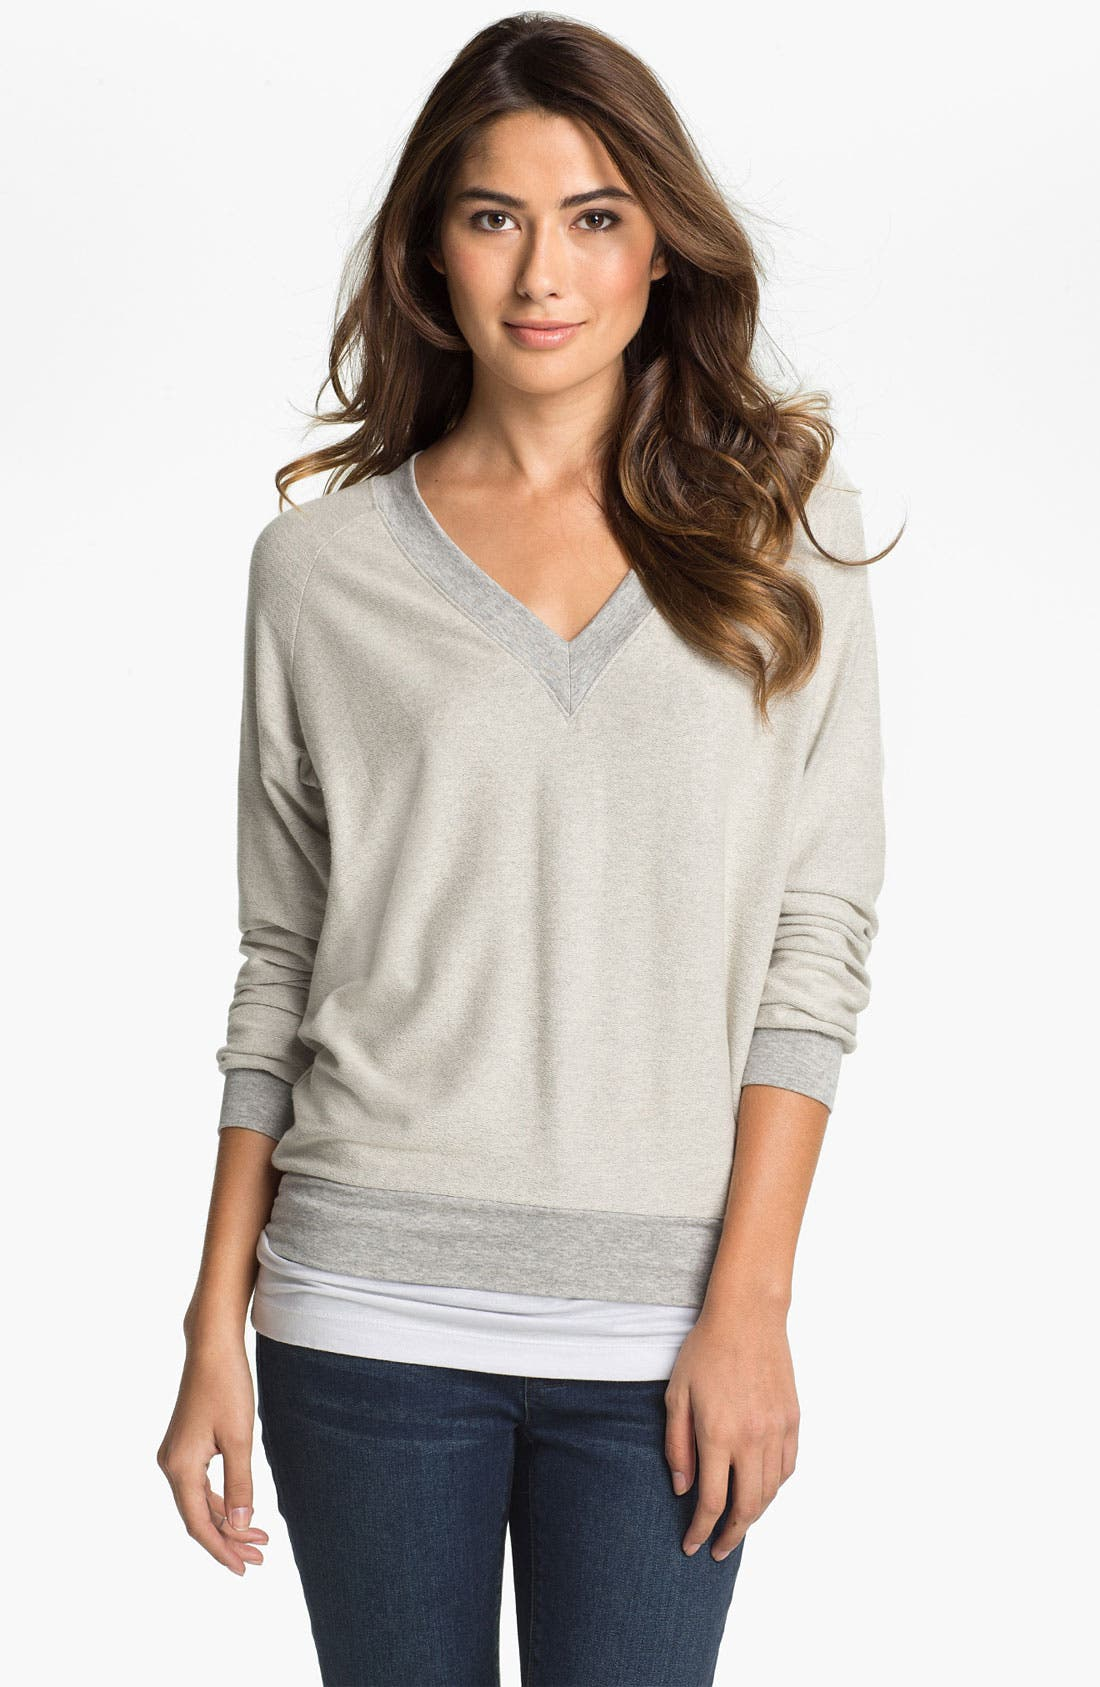 Alternate Image 1 Selected - Cielo 'Inside Out' V-Neck Sweatshirt